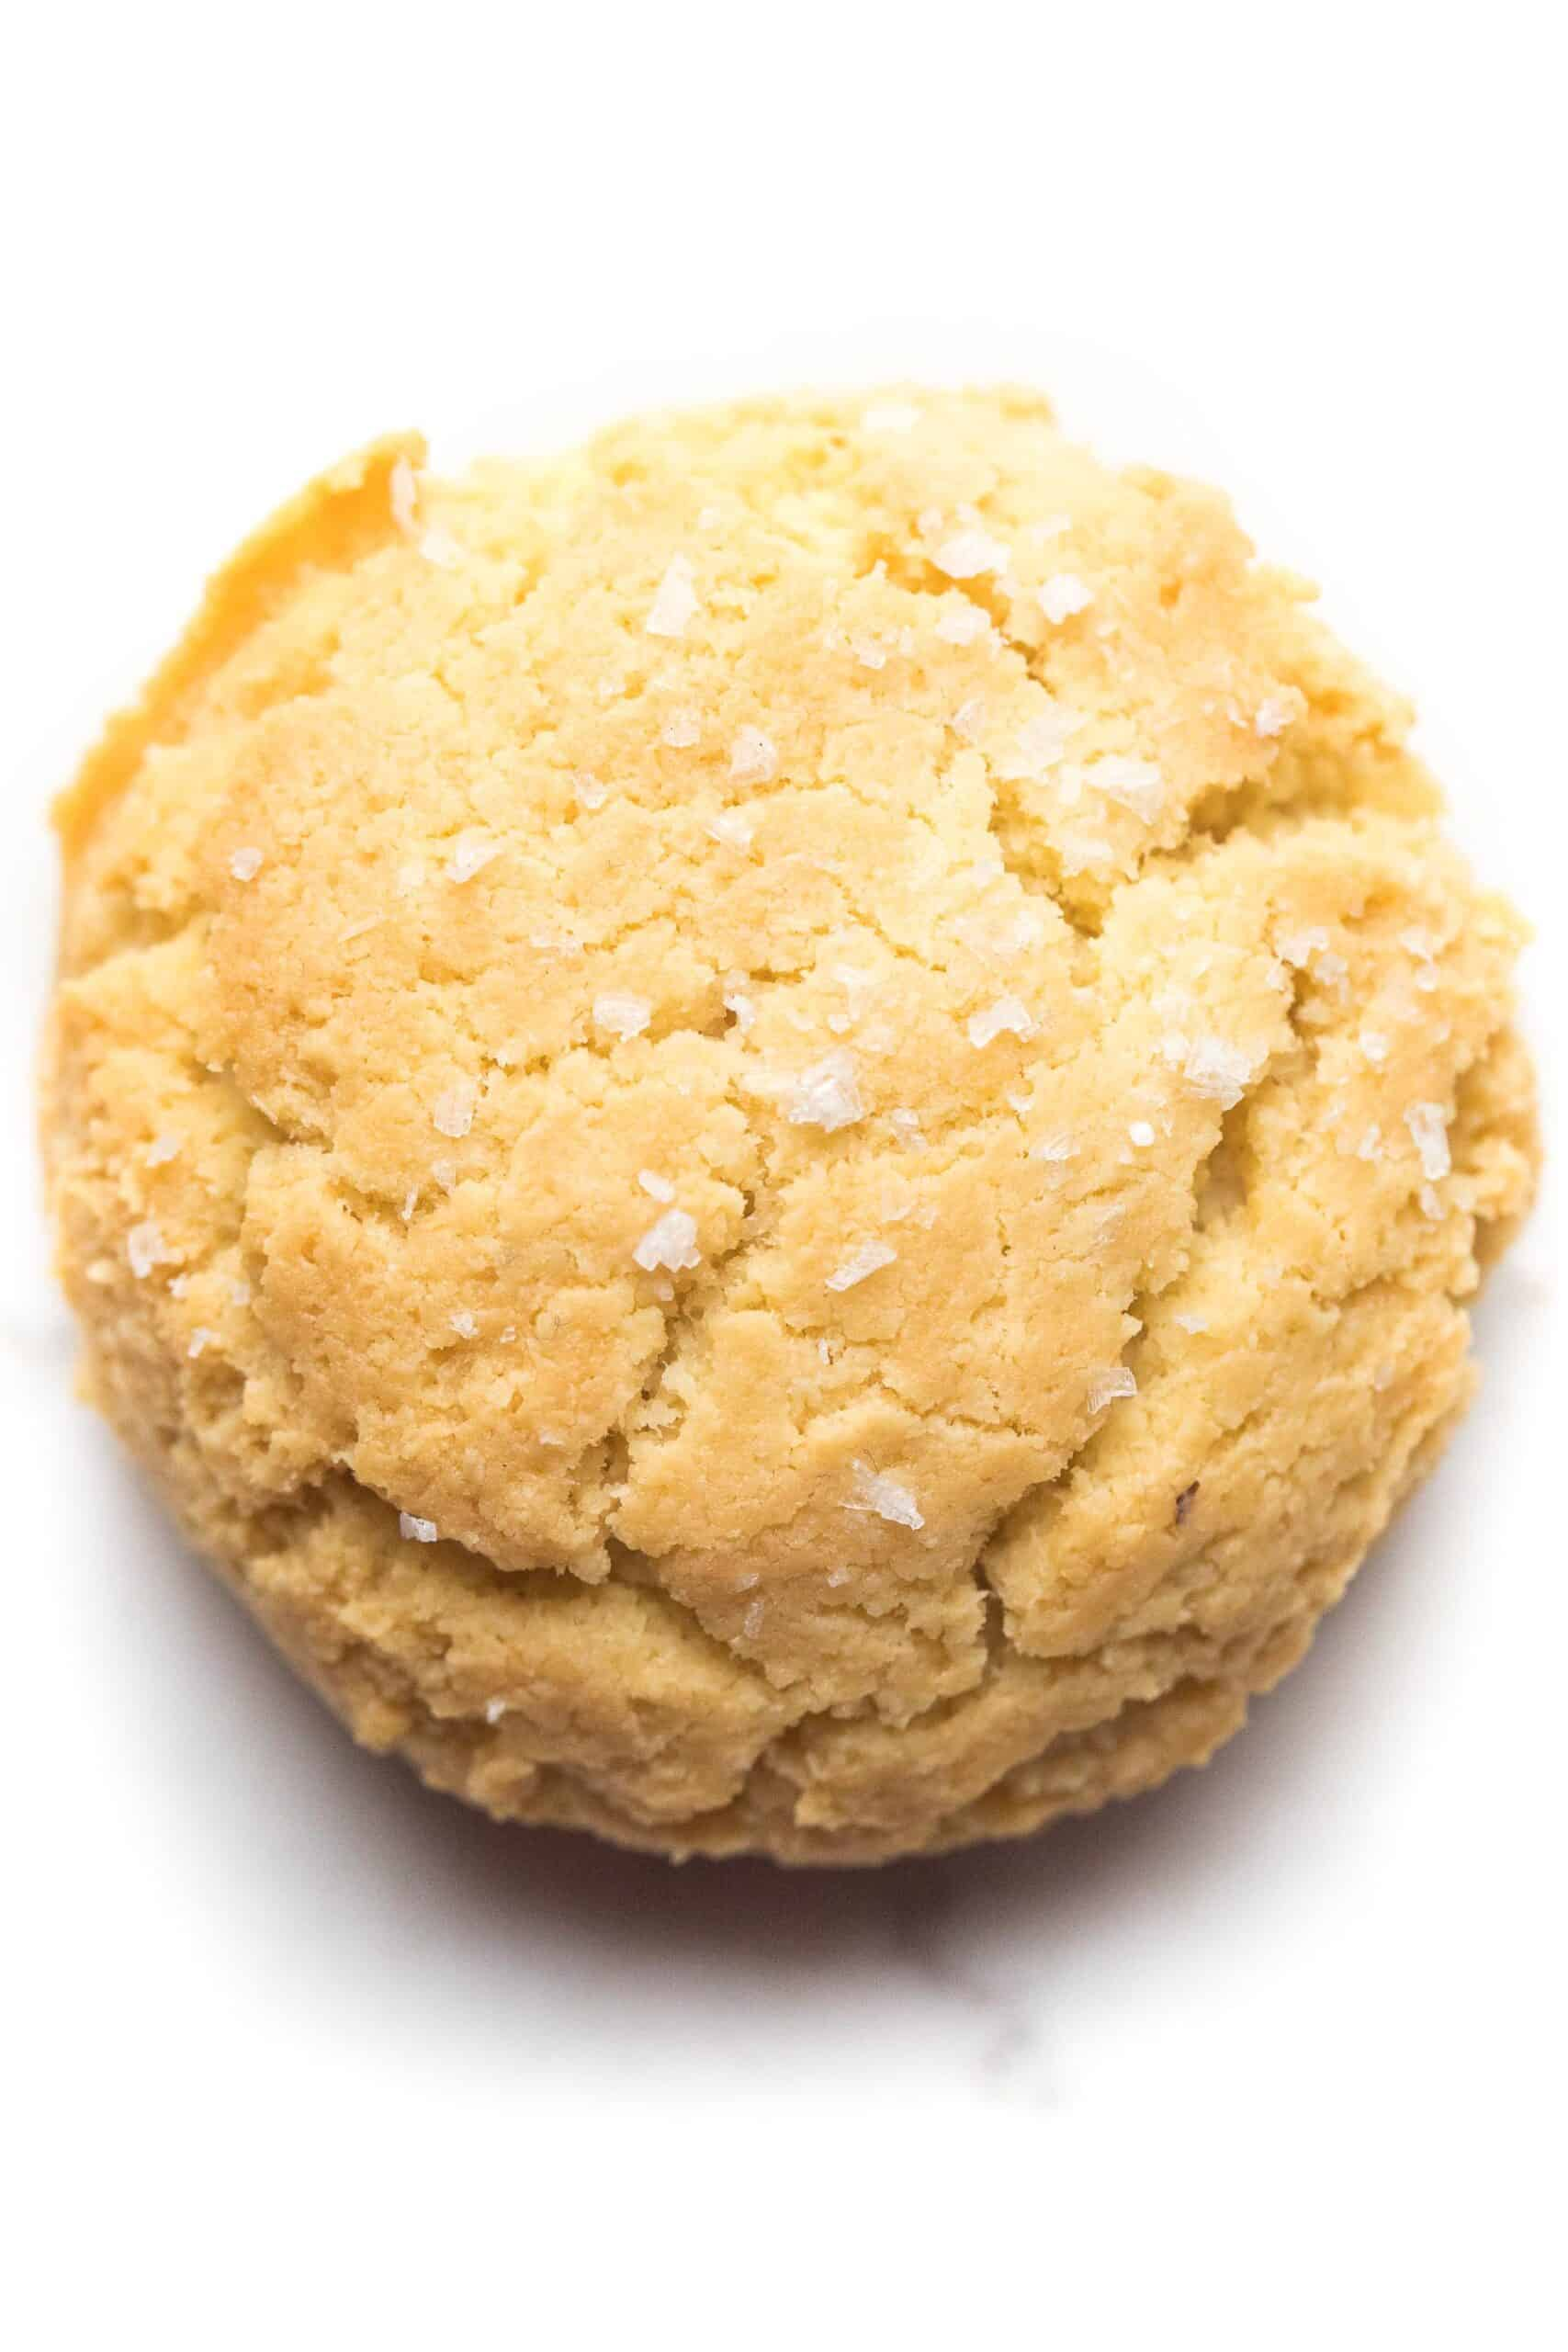 keto biscuit on a white background